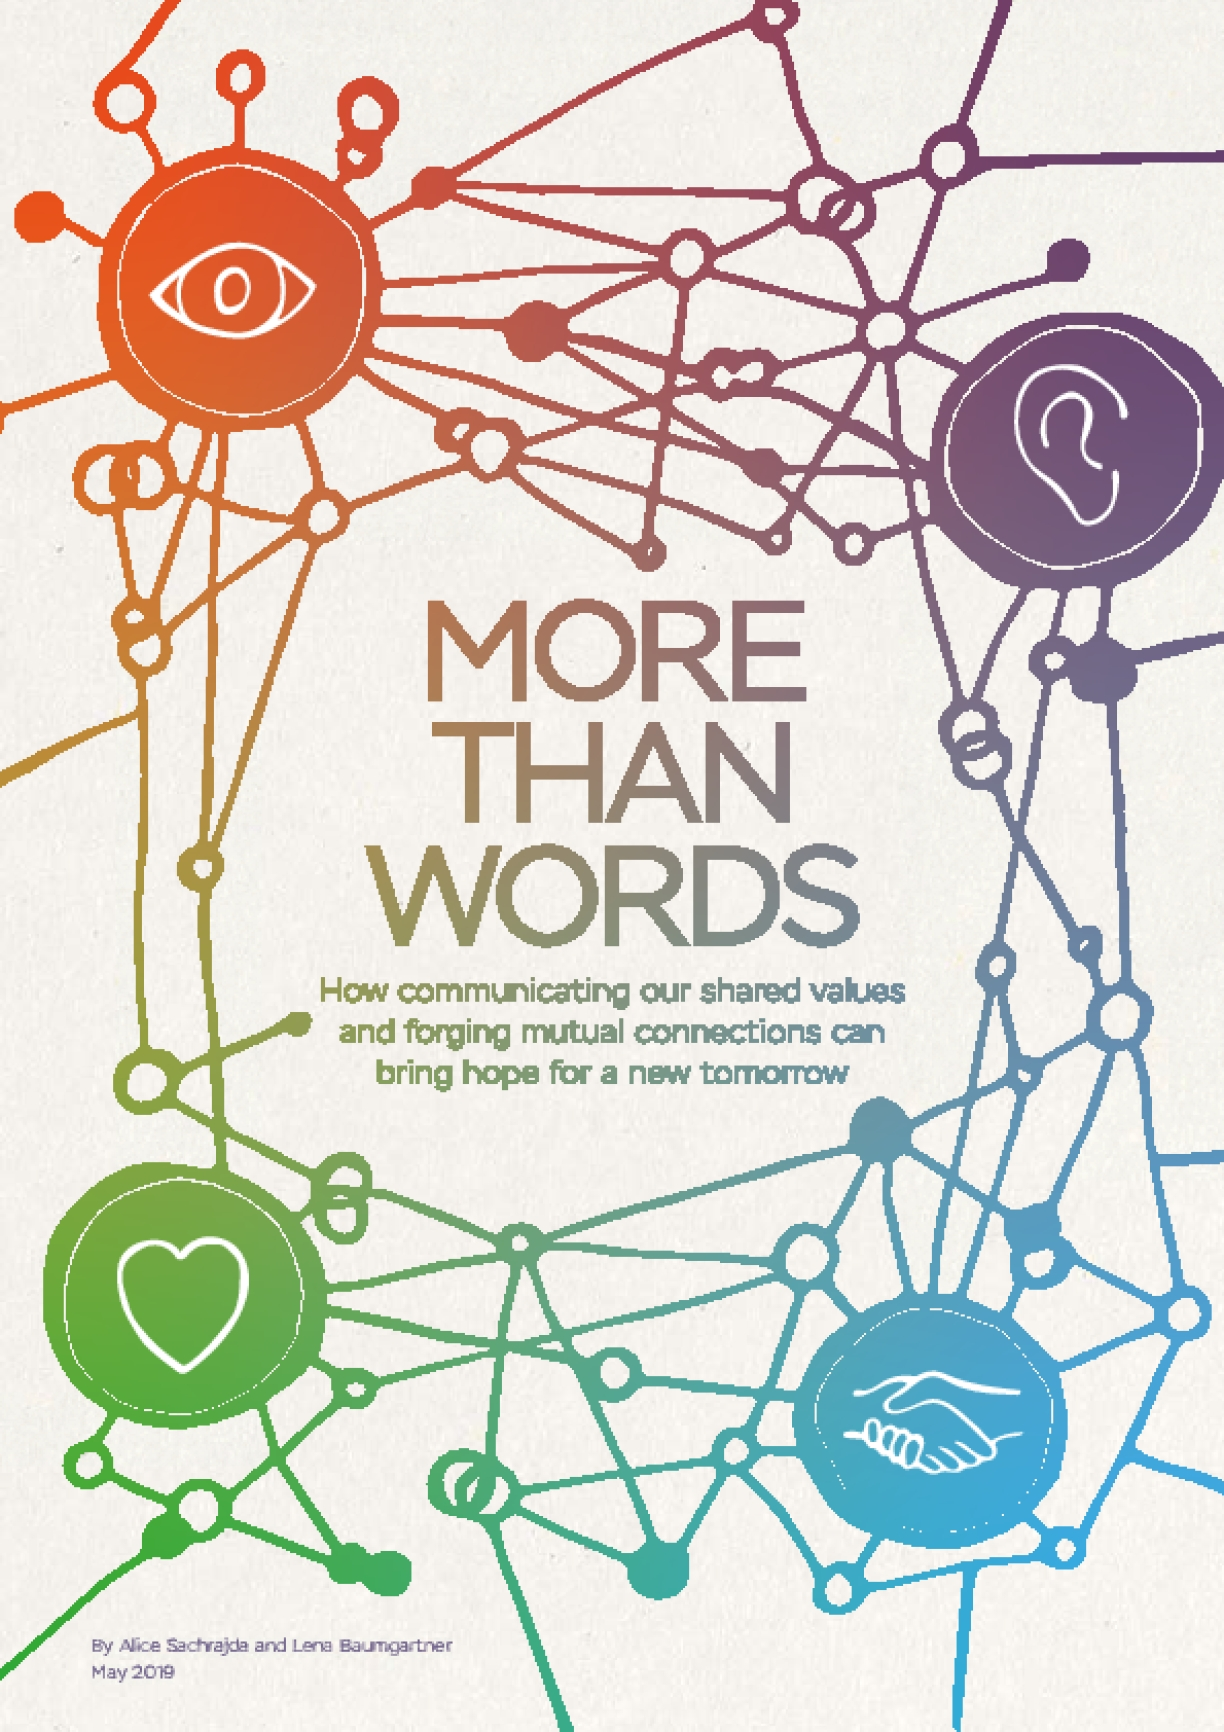 More Than Words: How Communicating our Shared Values and Forging Mutual Connections Can Bring Hope for a New Tomorrow